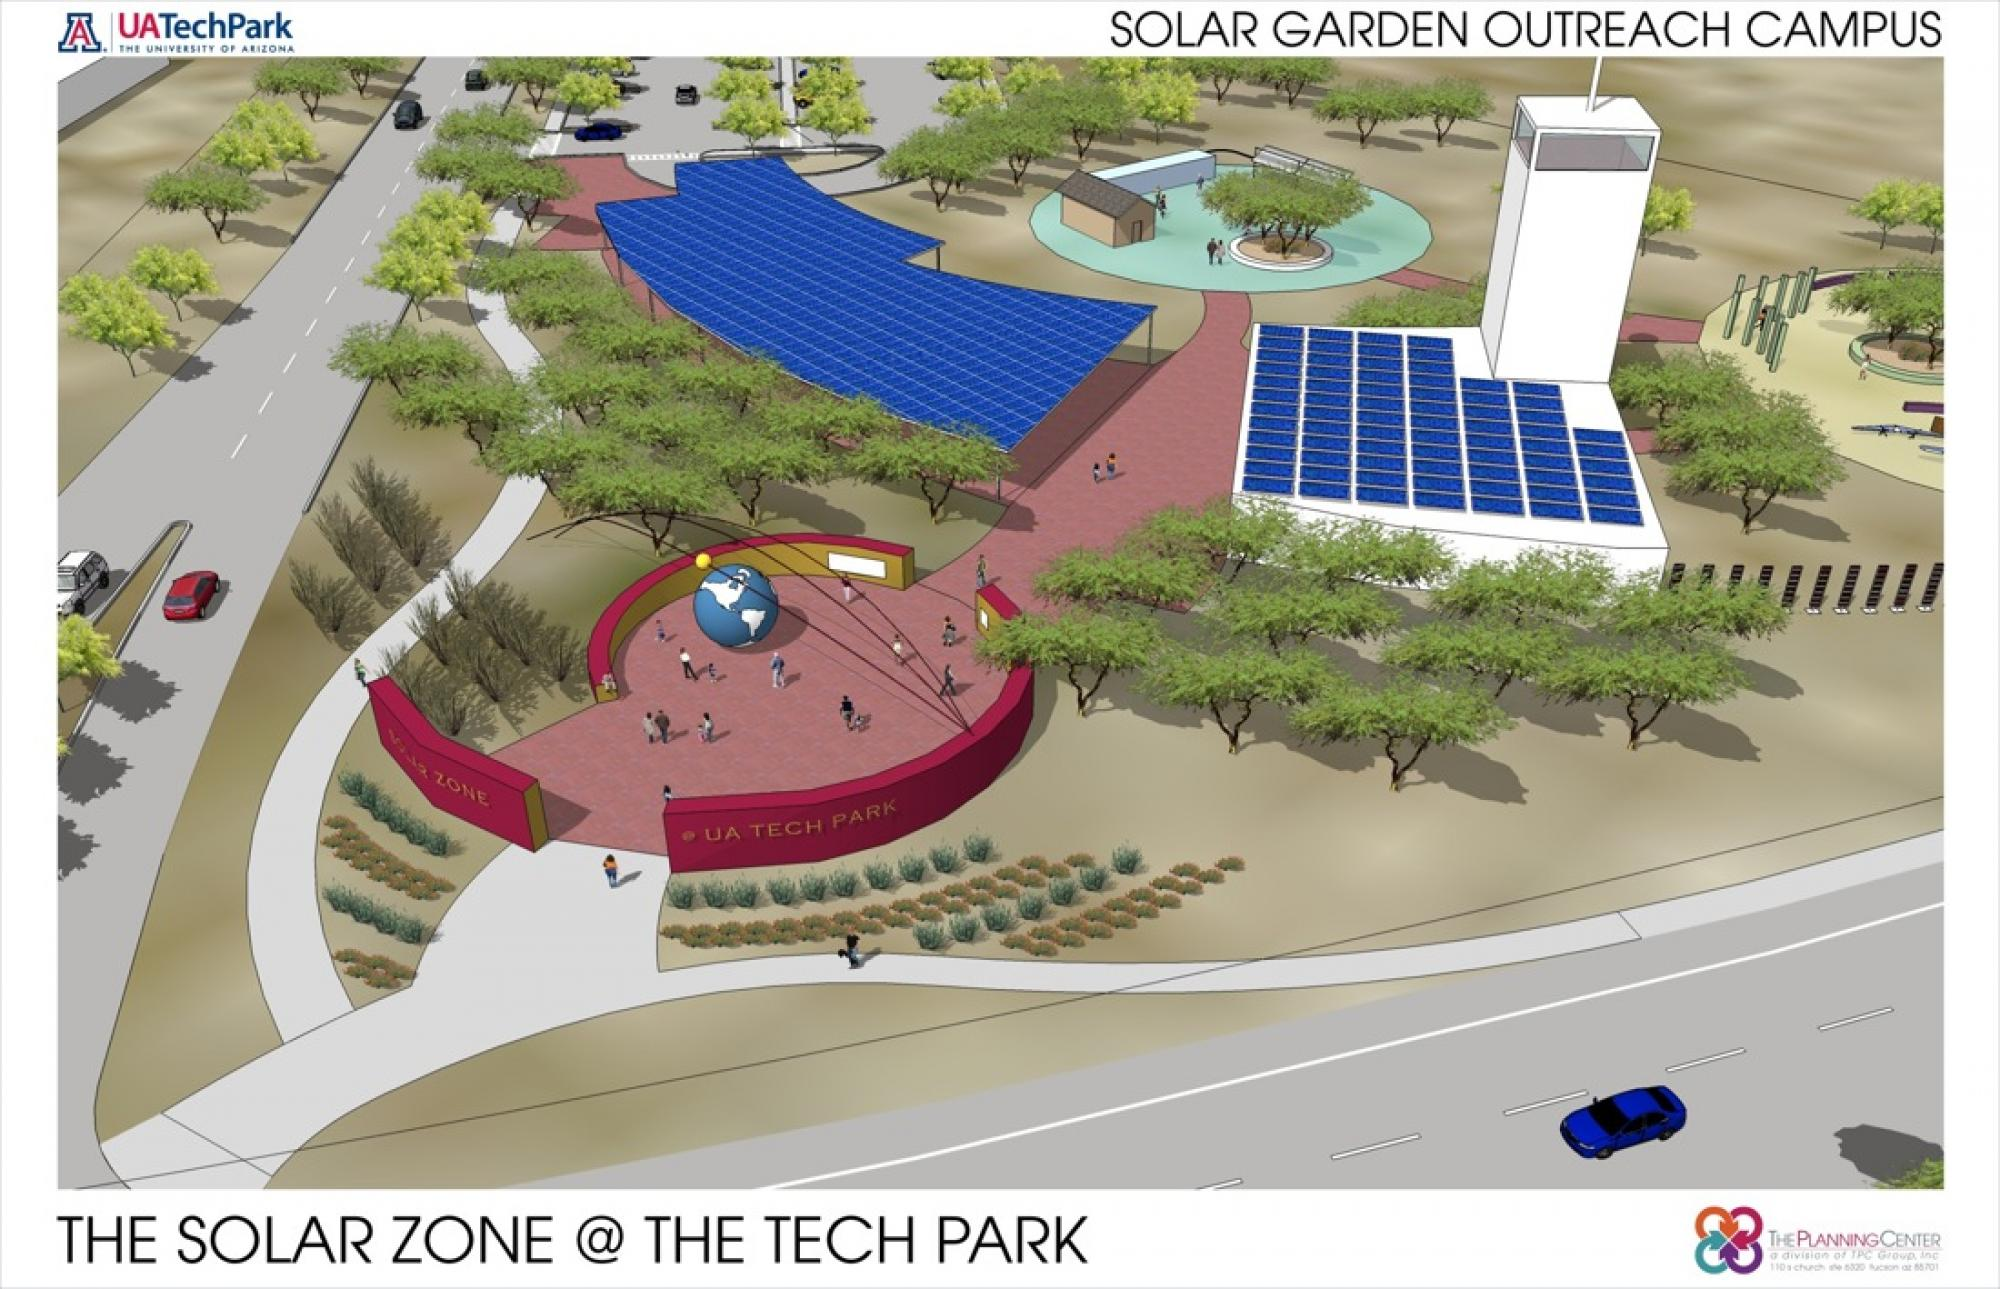 One component of the Solar Zone will be a public demonstration center where community members can visit the UA Tech Park to learn more about the site, its research and the development of products to harness solar energy.